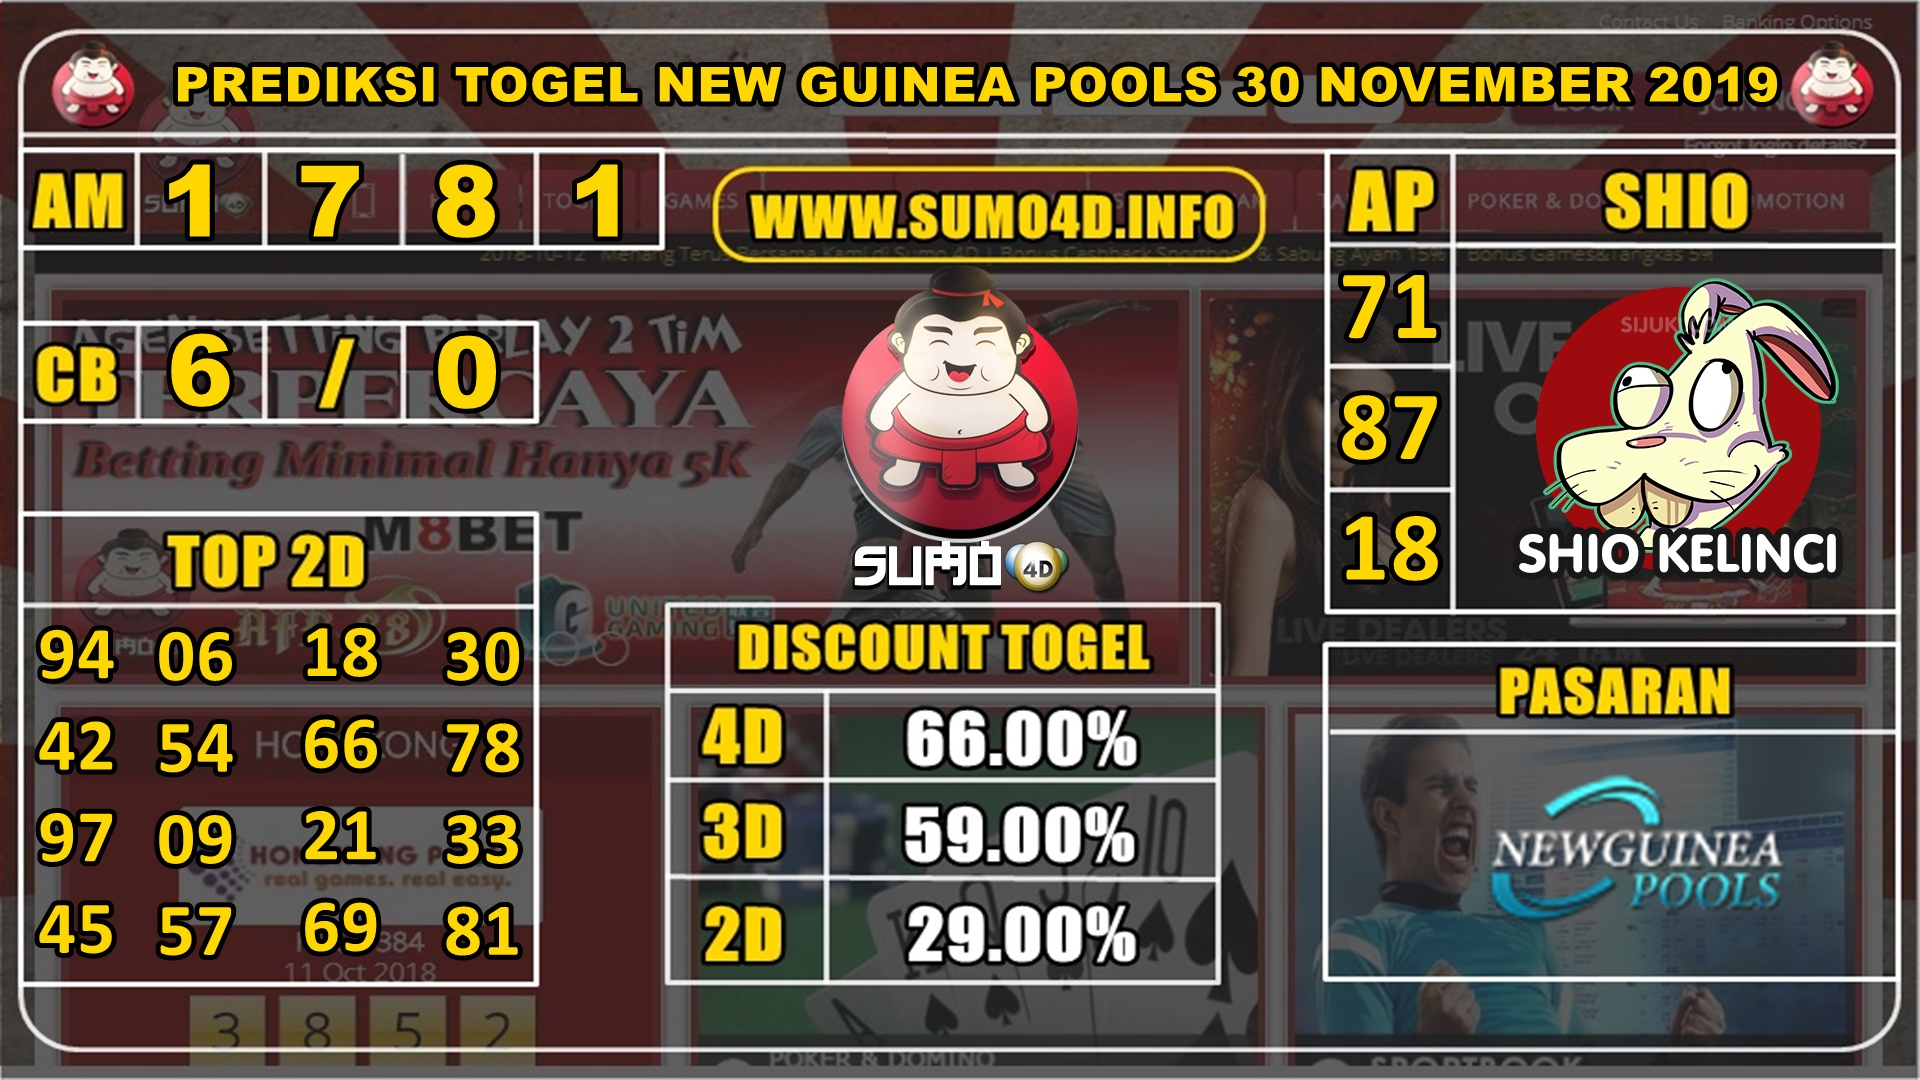 PREDIKSI TOGEL NEW GUINEA POOLS 30 NOVEMBER 2019